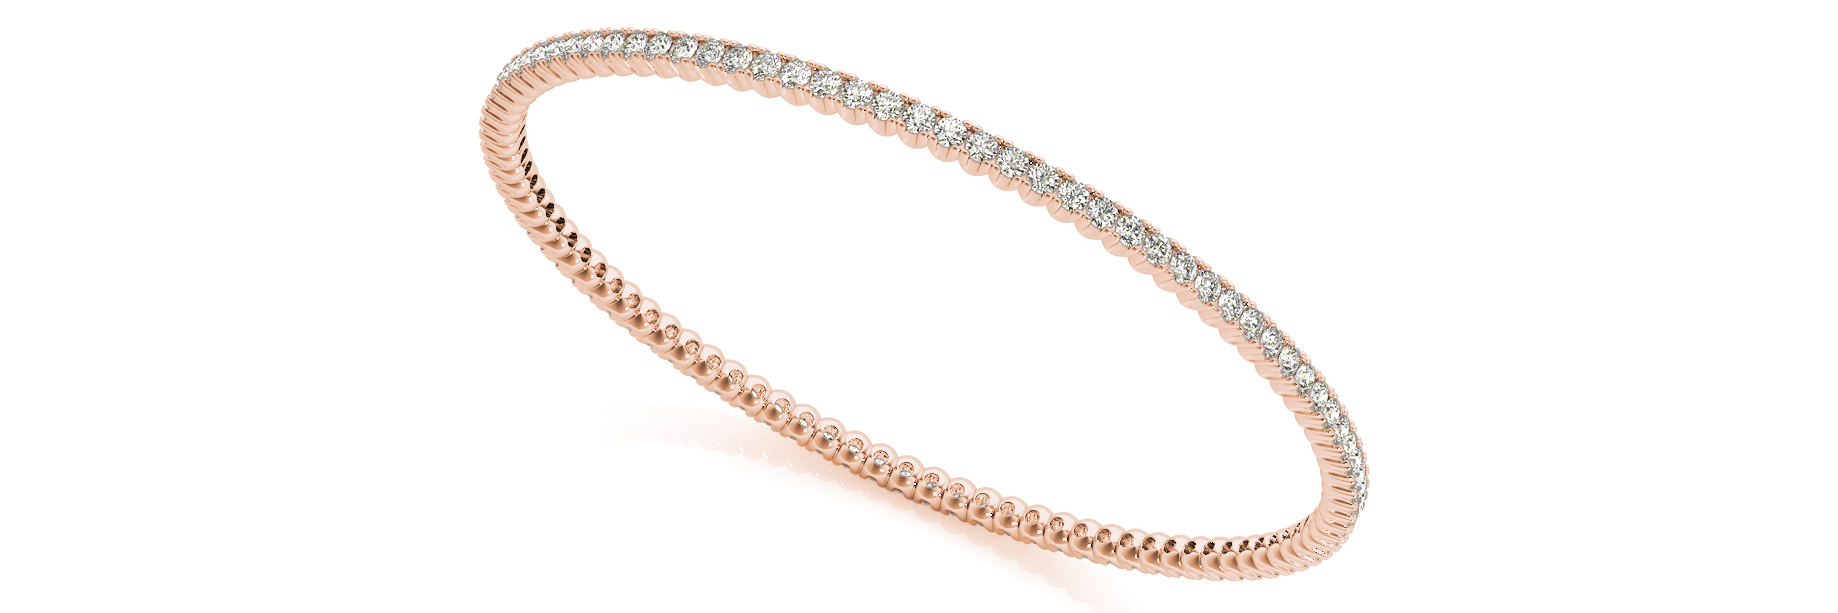 2.79 Carat Round Diamond Eternity Bangle in Rose Gold